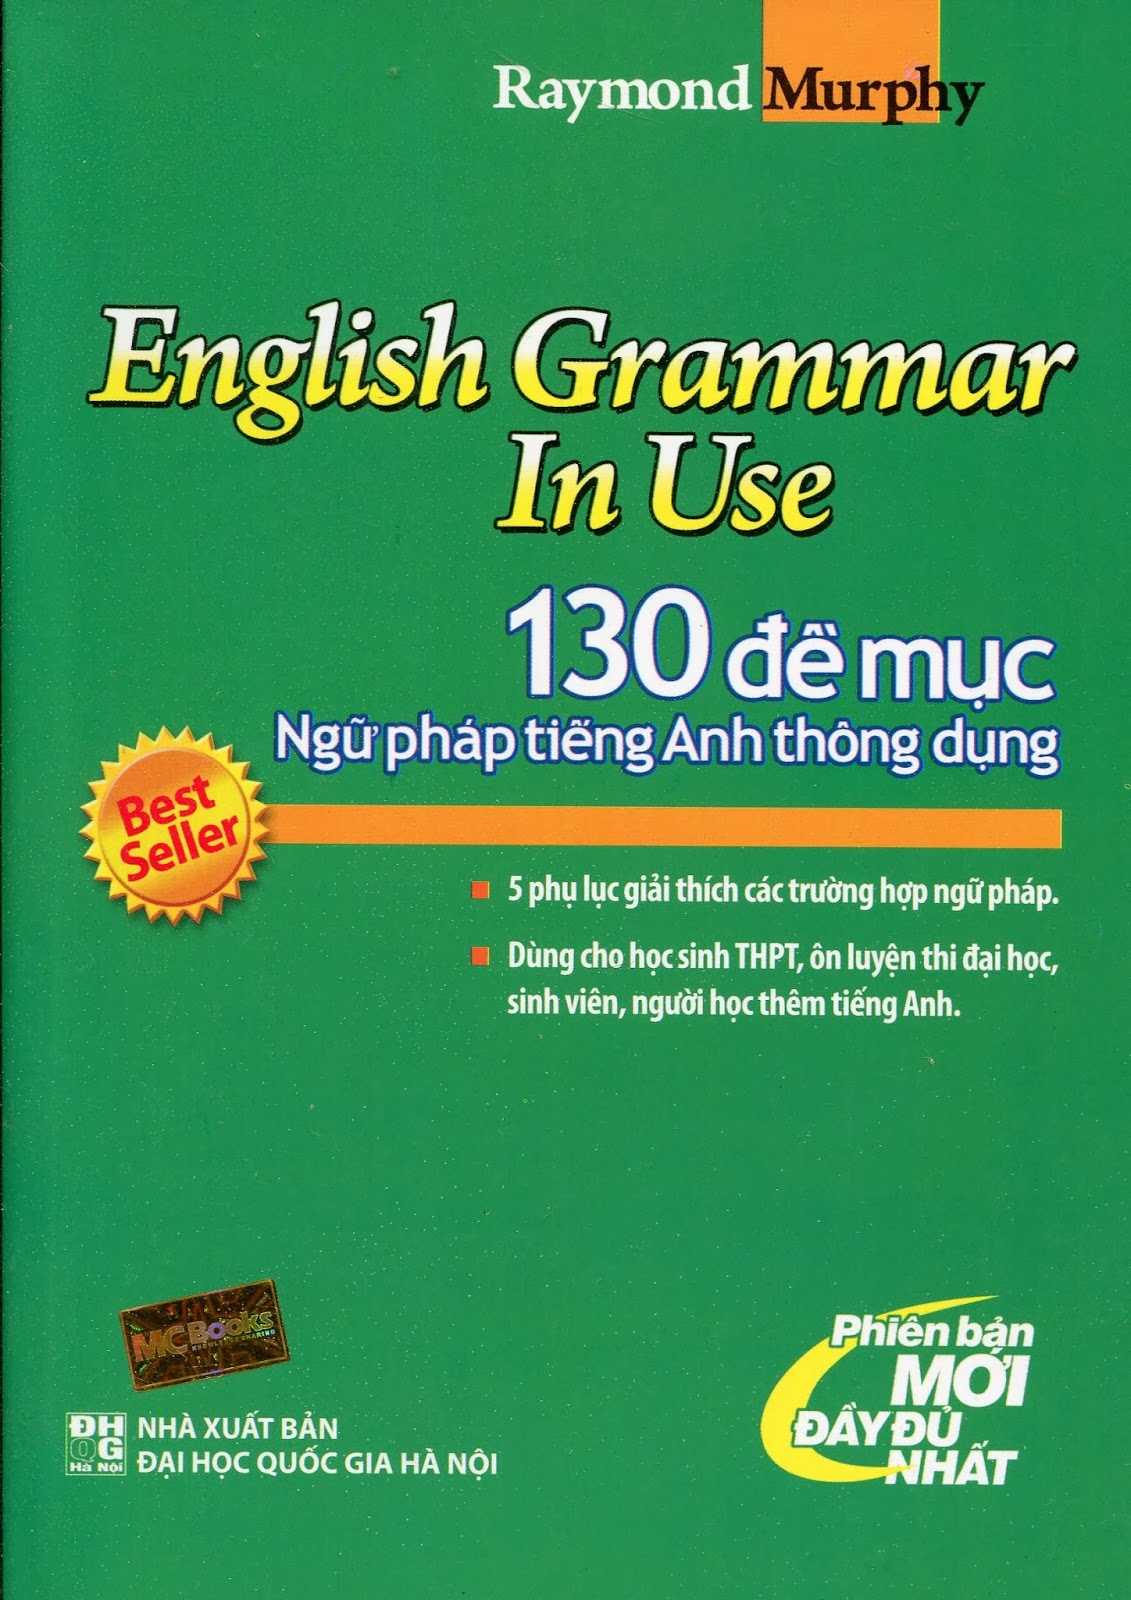 English Grammar in Use - Raymond Murphy ~ Free Books for Learning